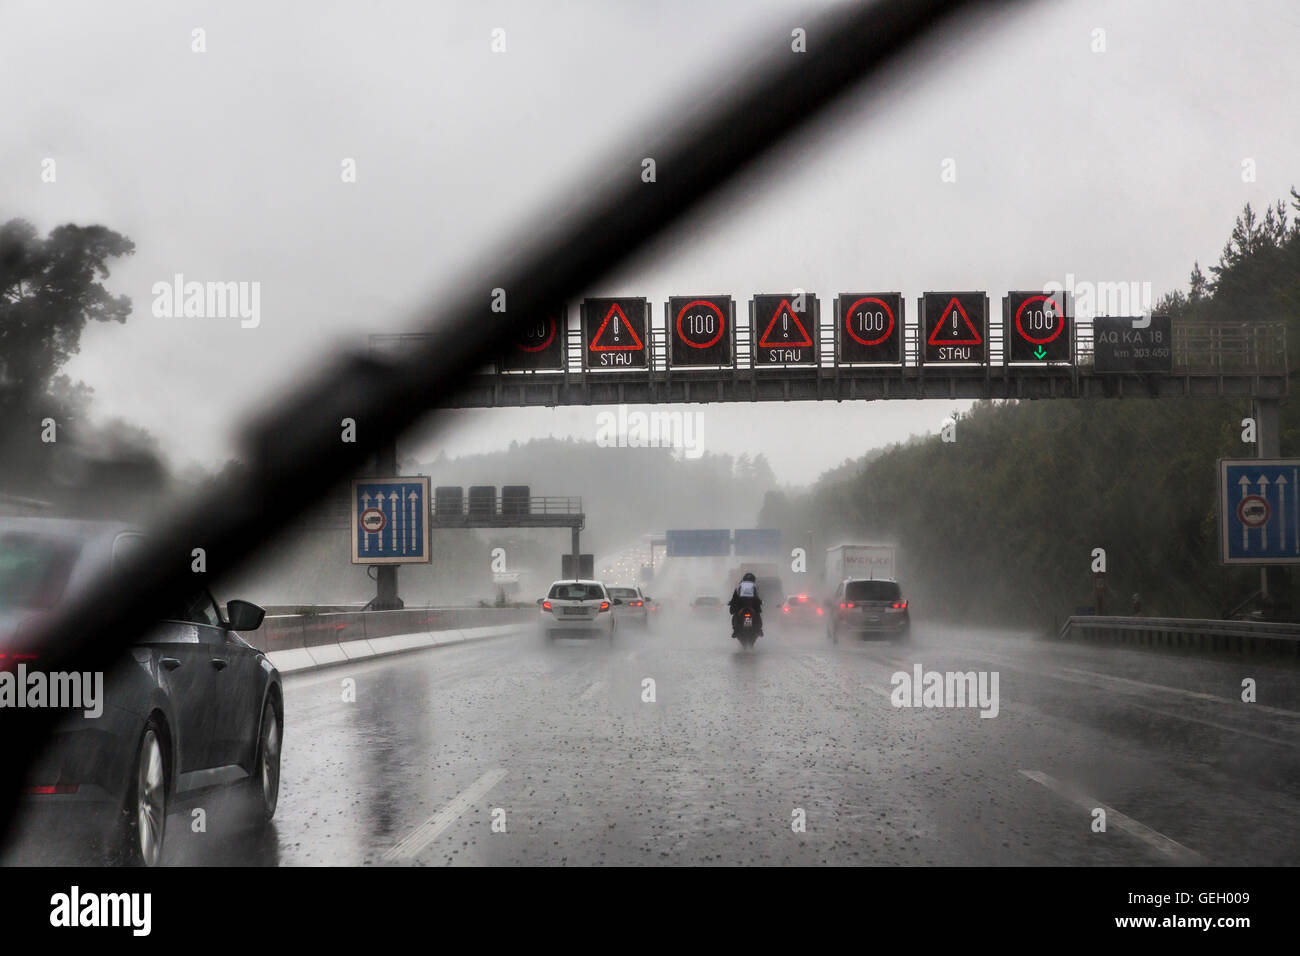 trucks rain road stockfotos trucks rain road bilder alamy. Black Bedroom Furniture Sets. Home Design Ideas